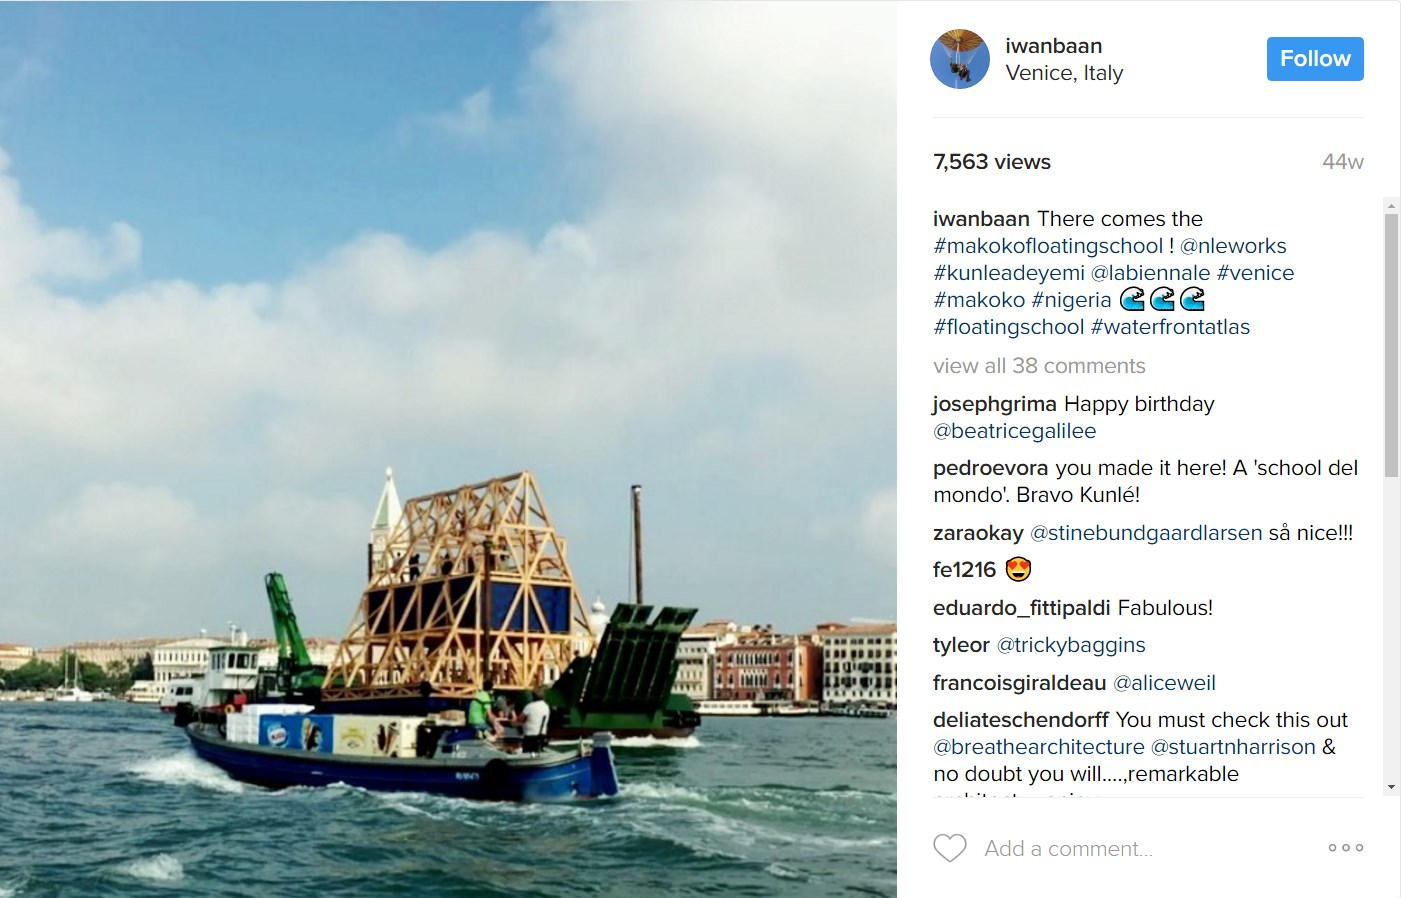 Makoko floating school entering the Venice lagoon for the 2016 Biennale